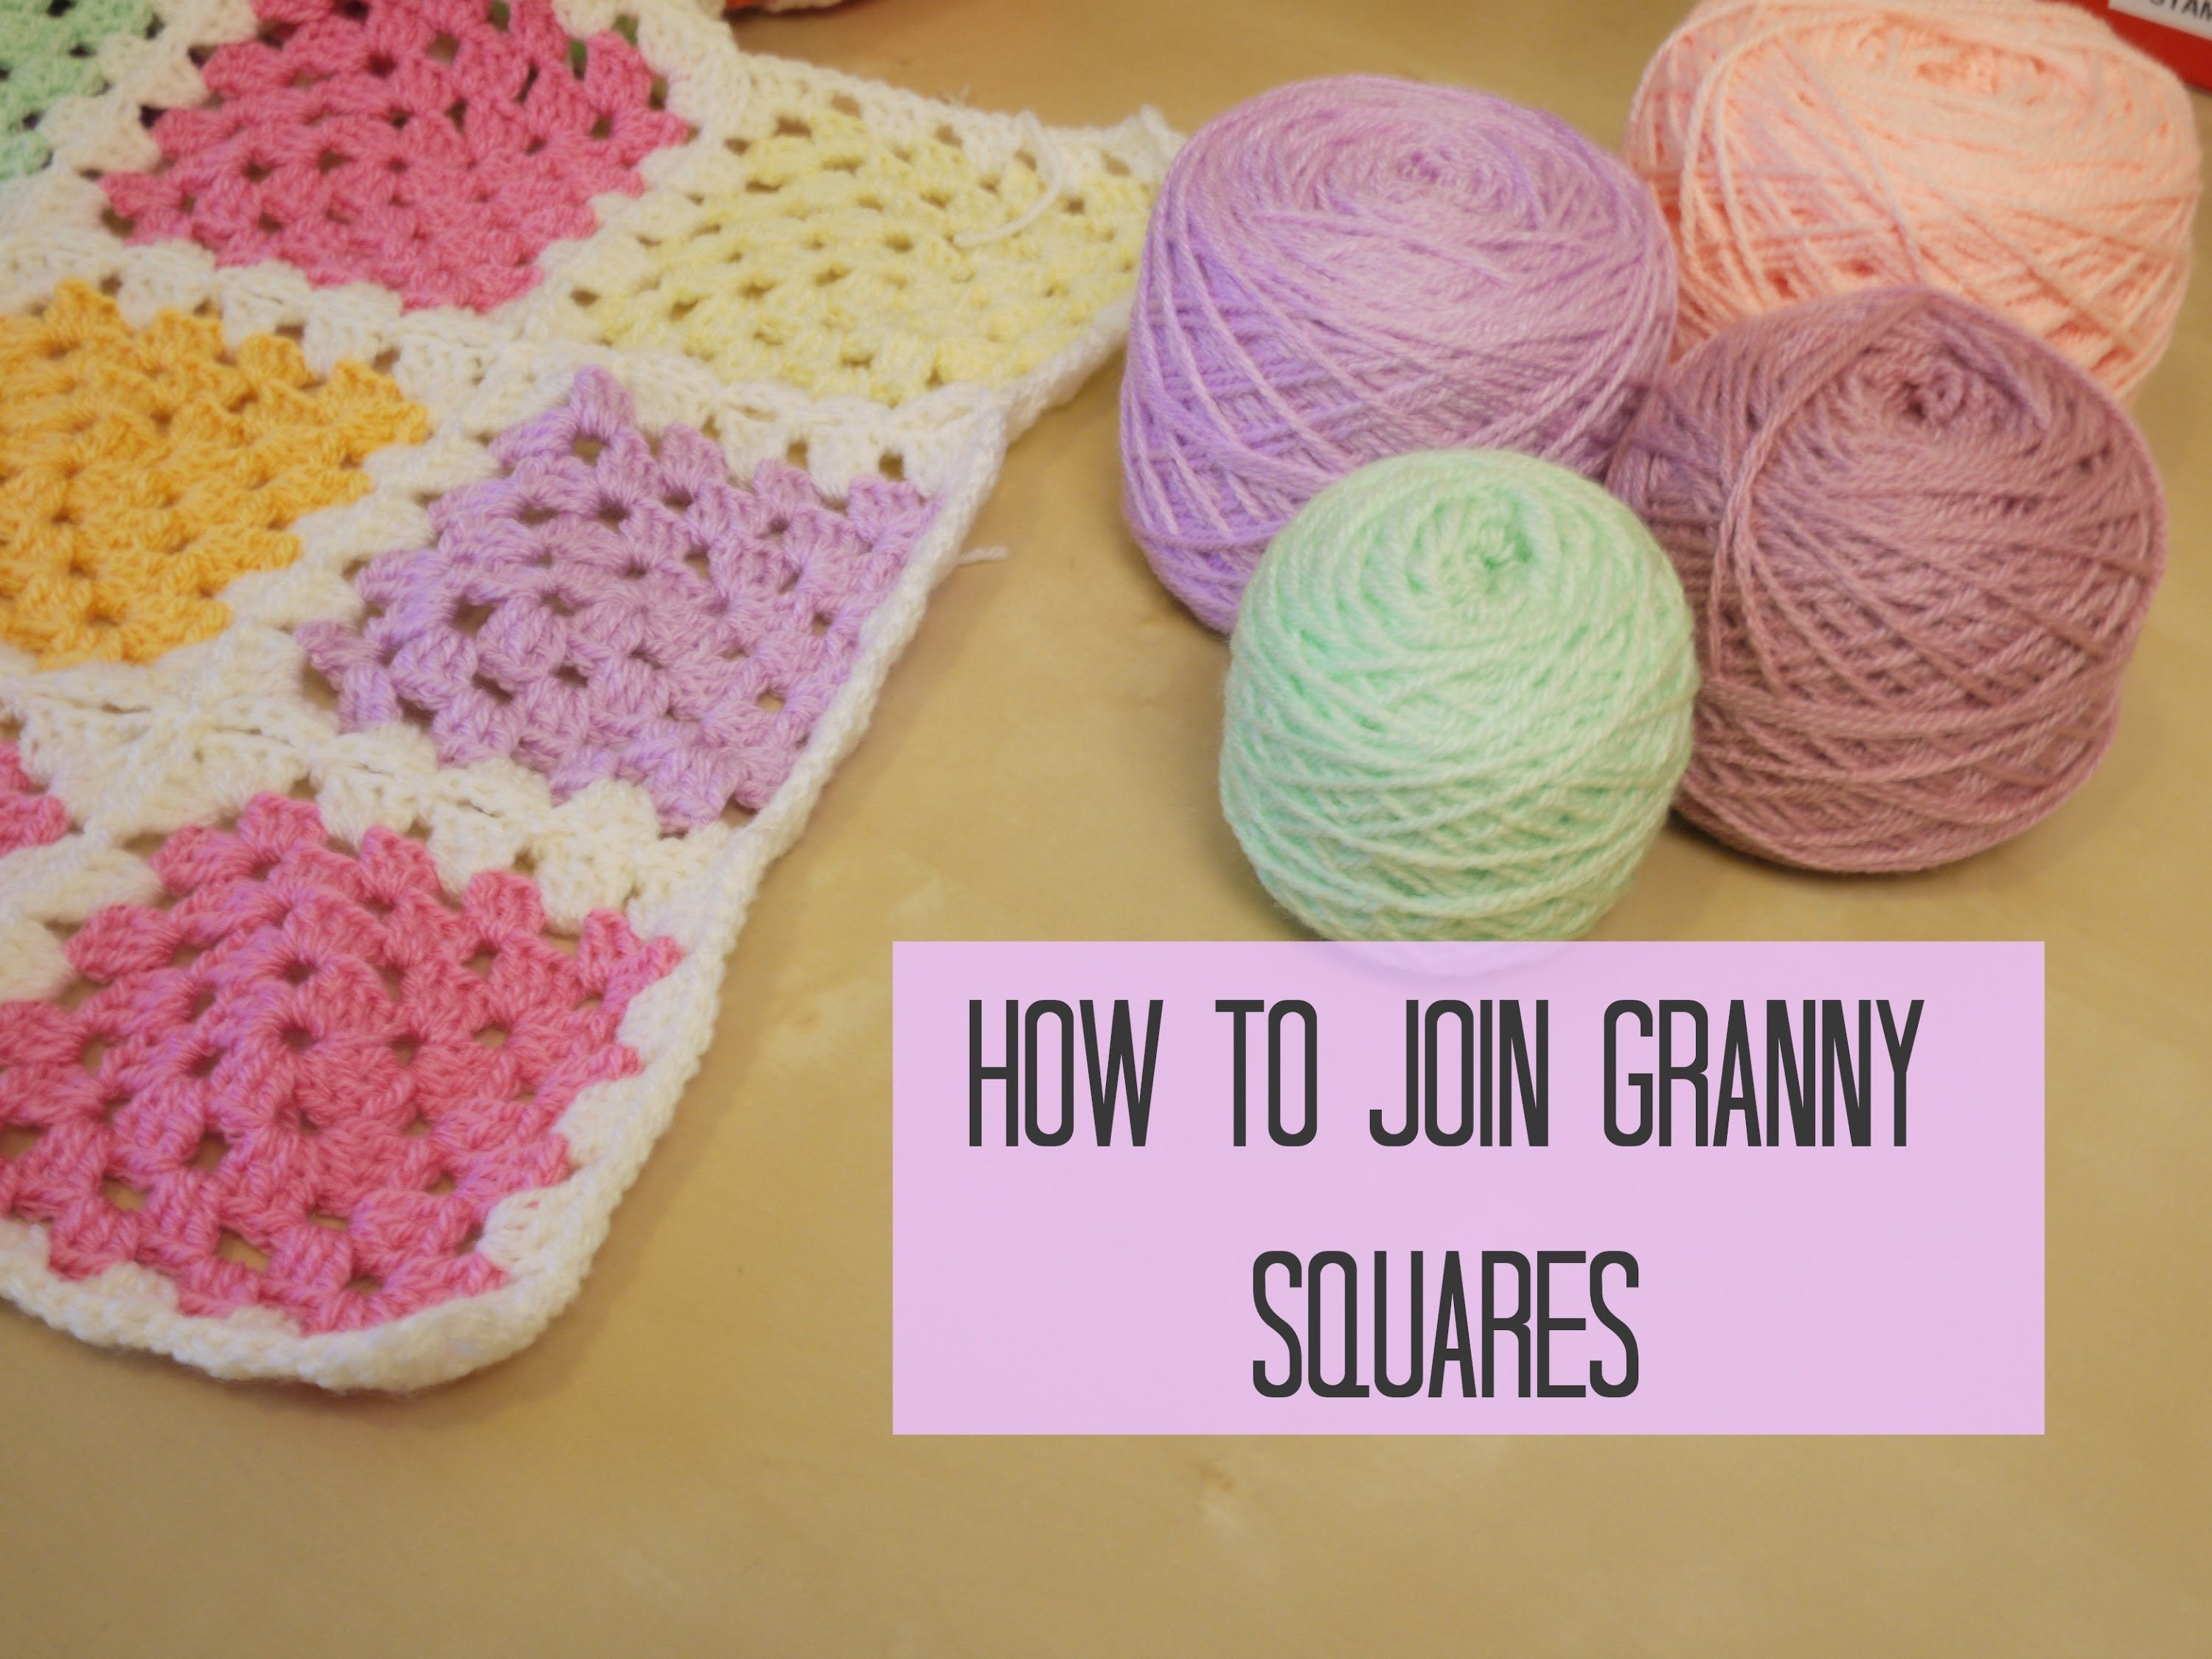 The Best How To Join Video Crochet How To Join Granny Squares For Beginners Joining Granny Squares Granny Square Crochet Pattern Joining Crochet Squares